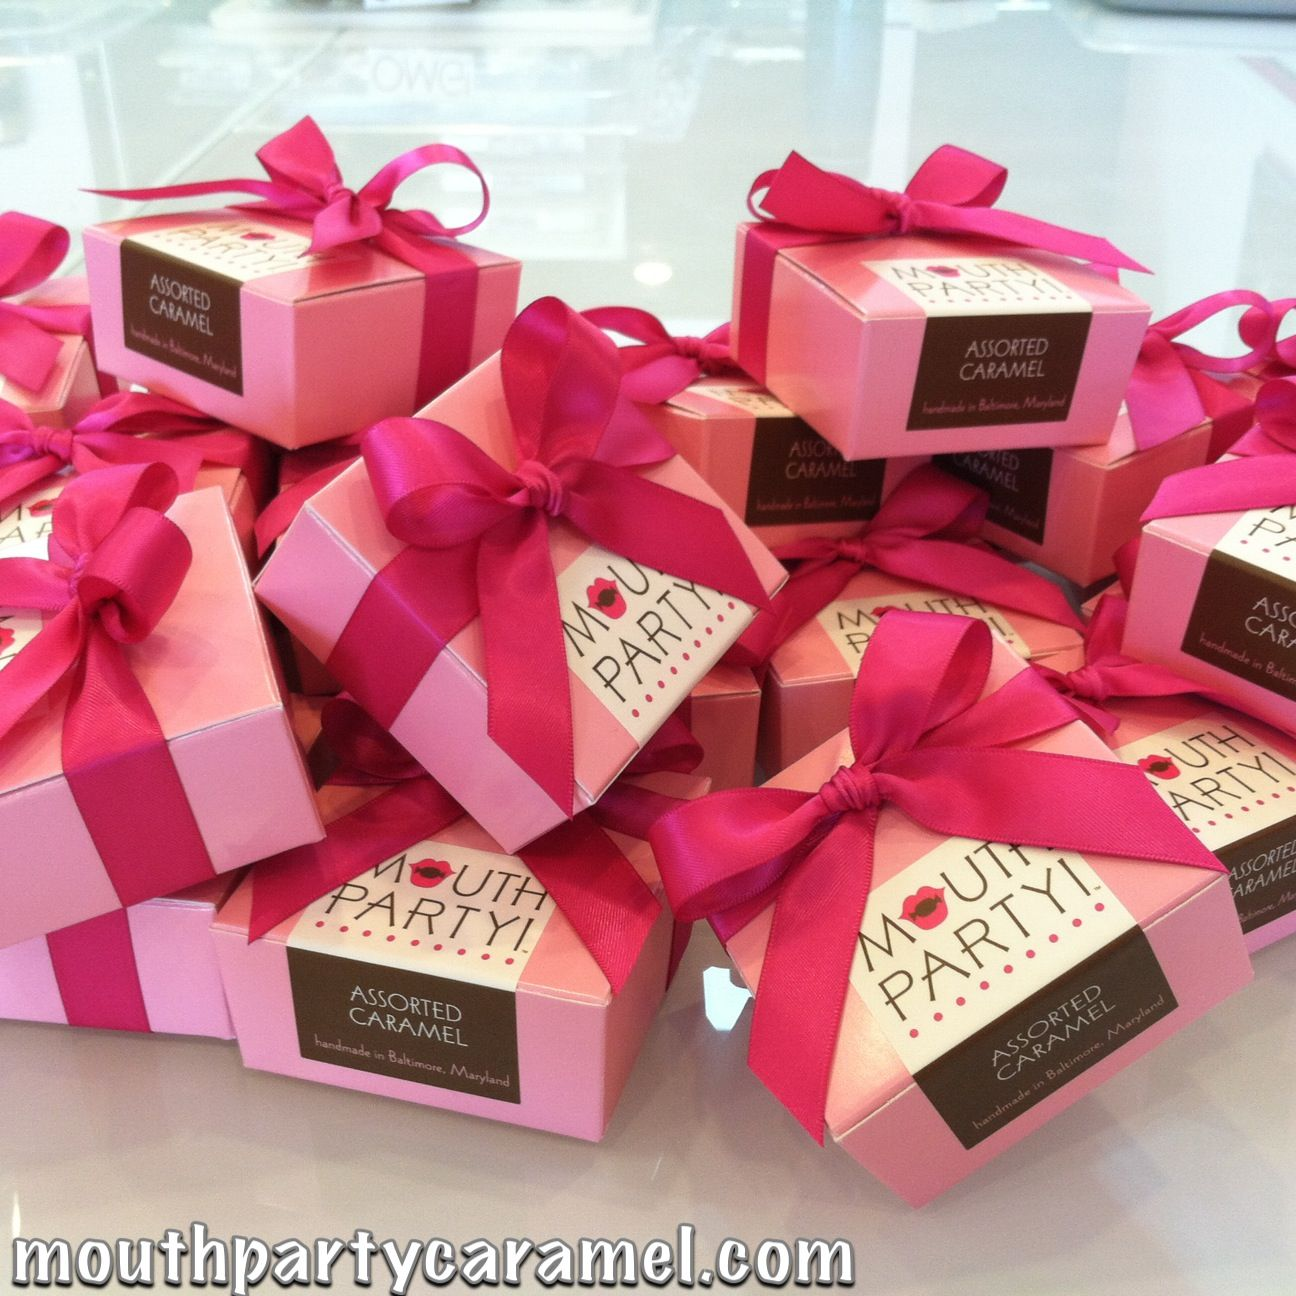 Pink on Pink! Caramel wedding favors!! | Mouth Party at Your Wedding ...